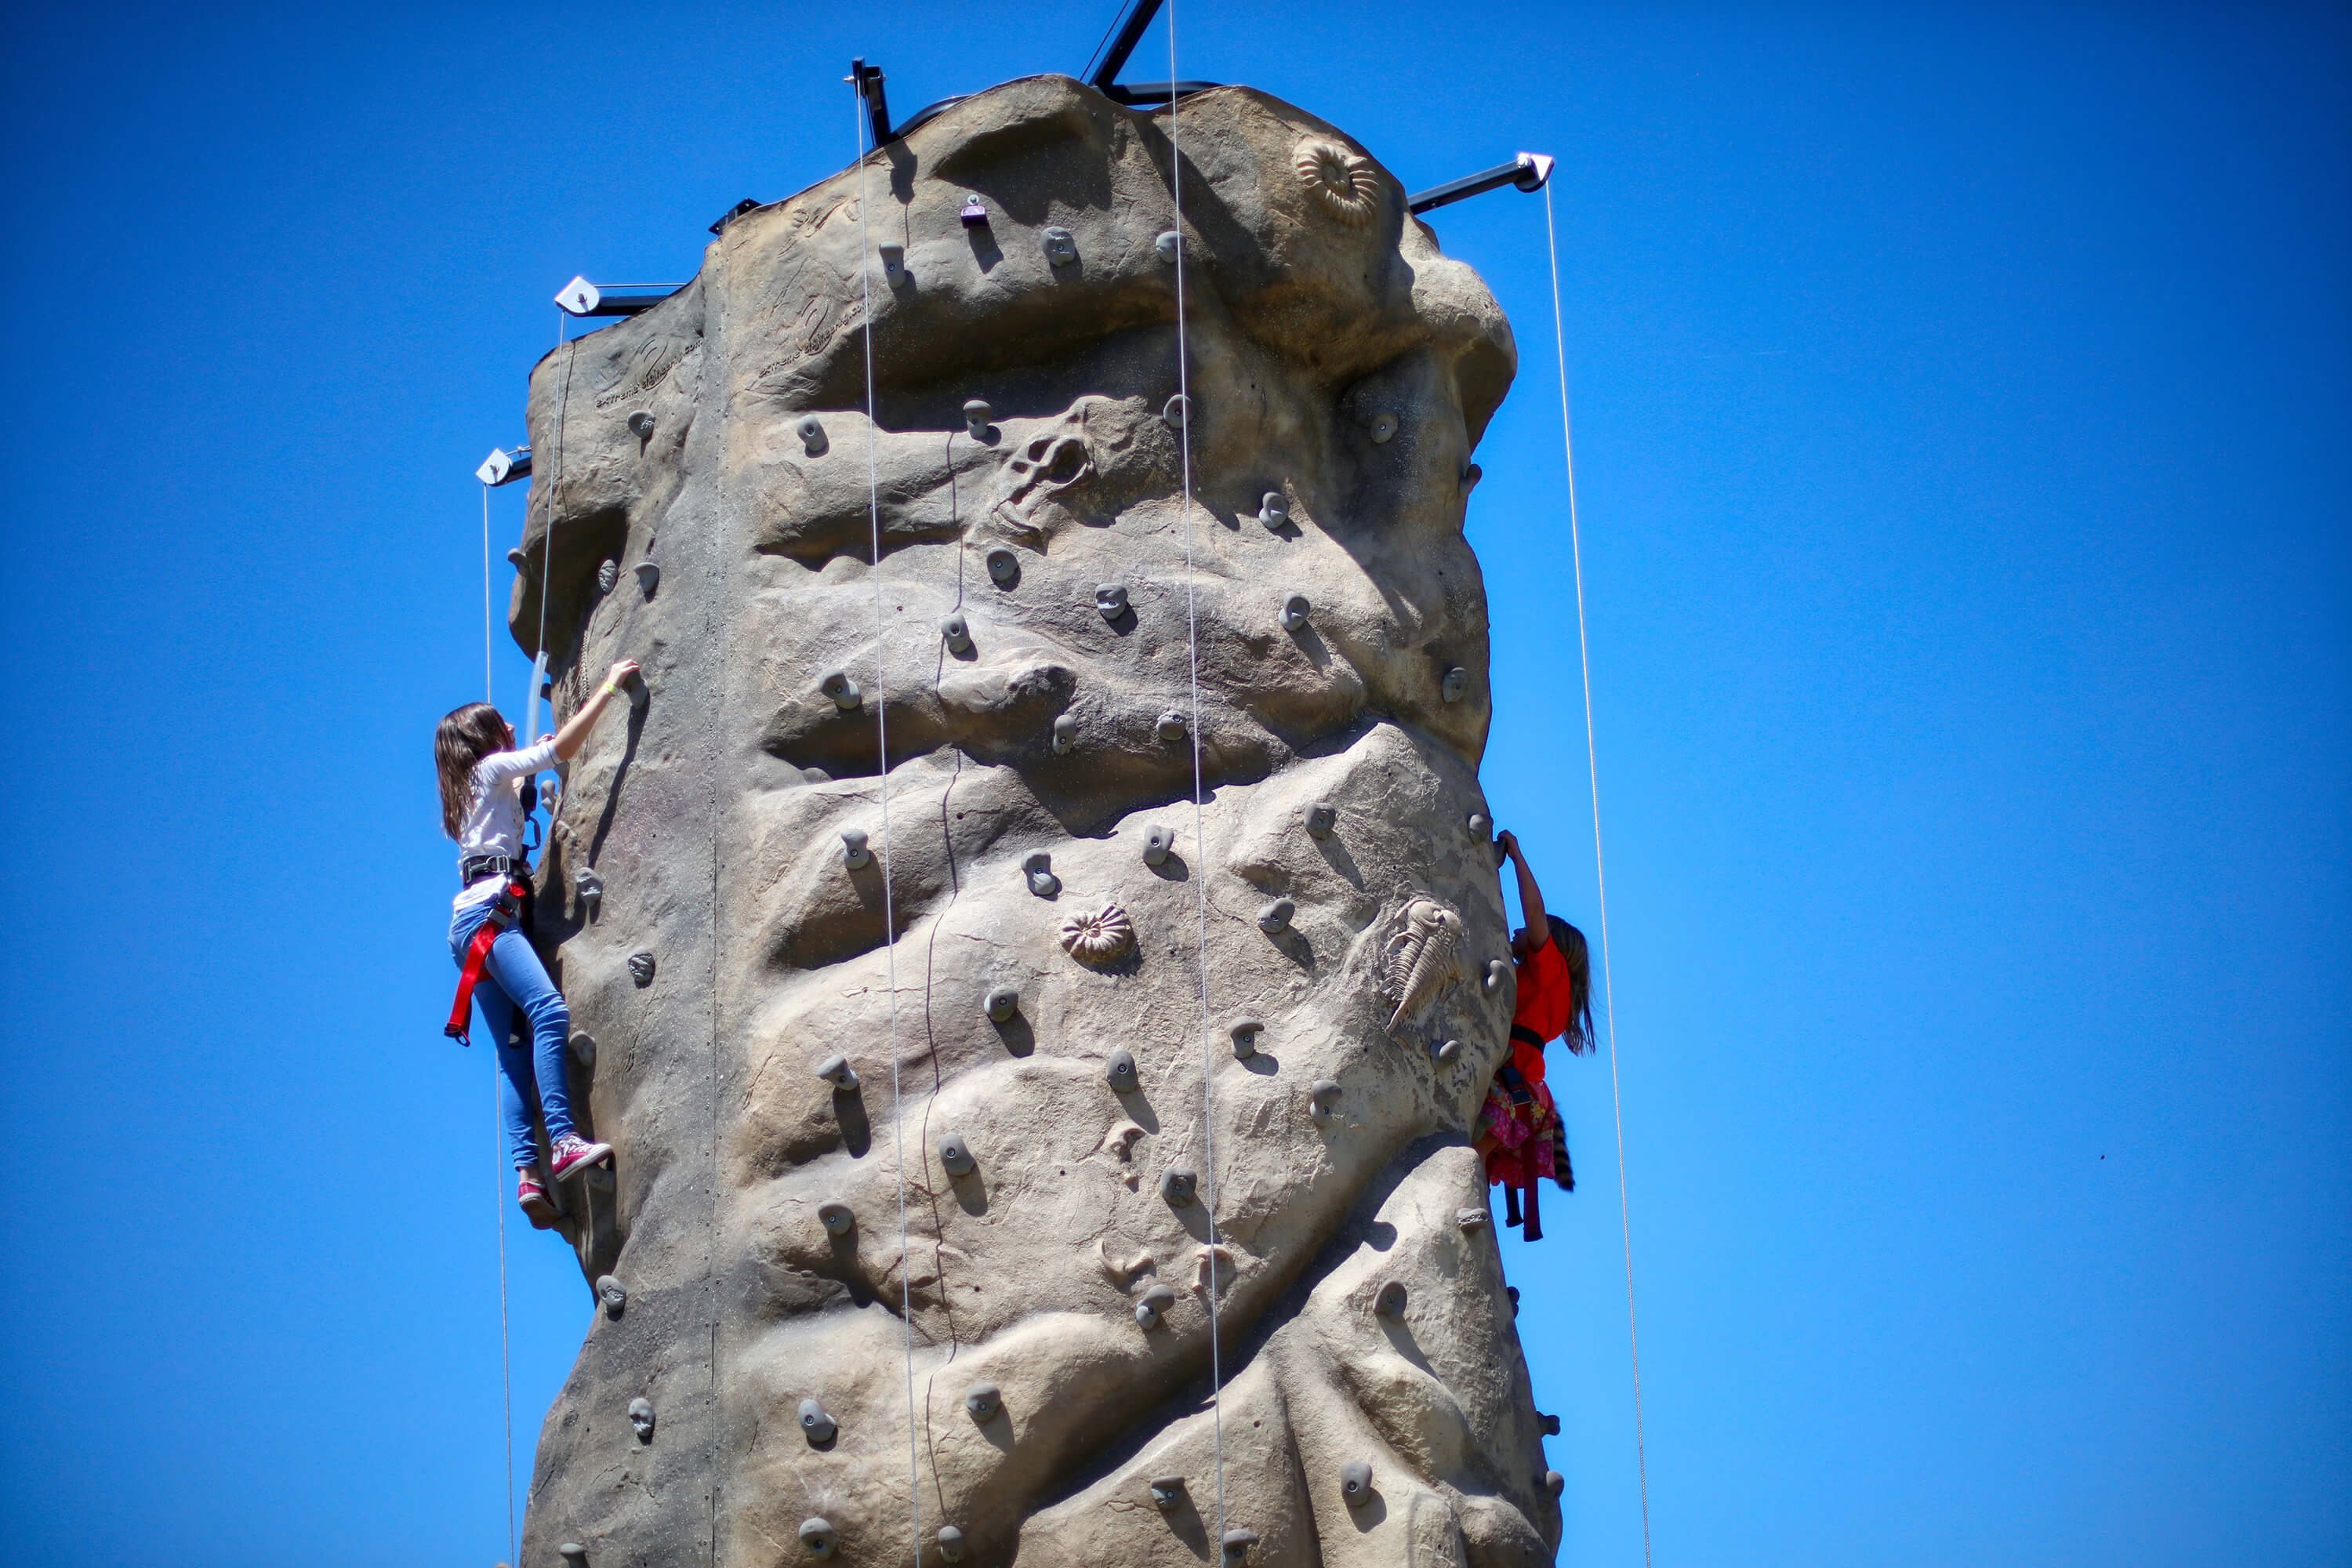 Rock Climbing Wall Near Orlando, FL |  Westgate River Ranch Resort & Rodeo | Westgate Resorts